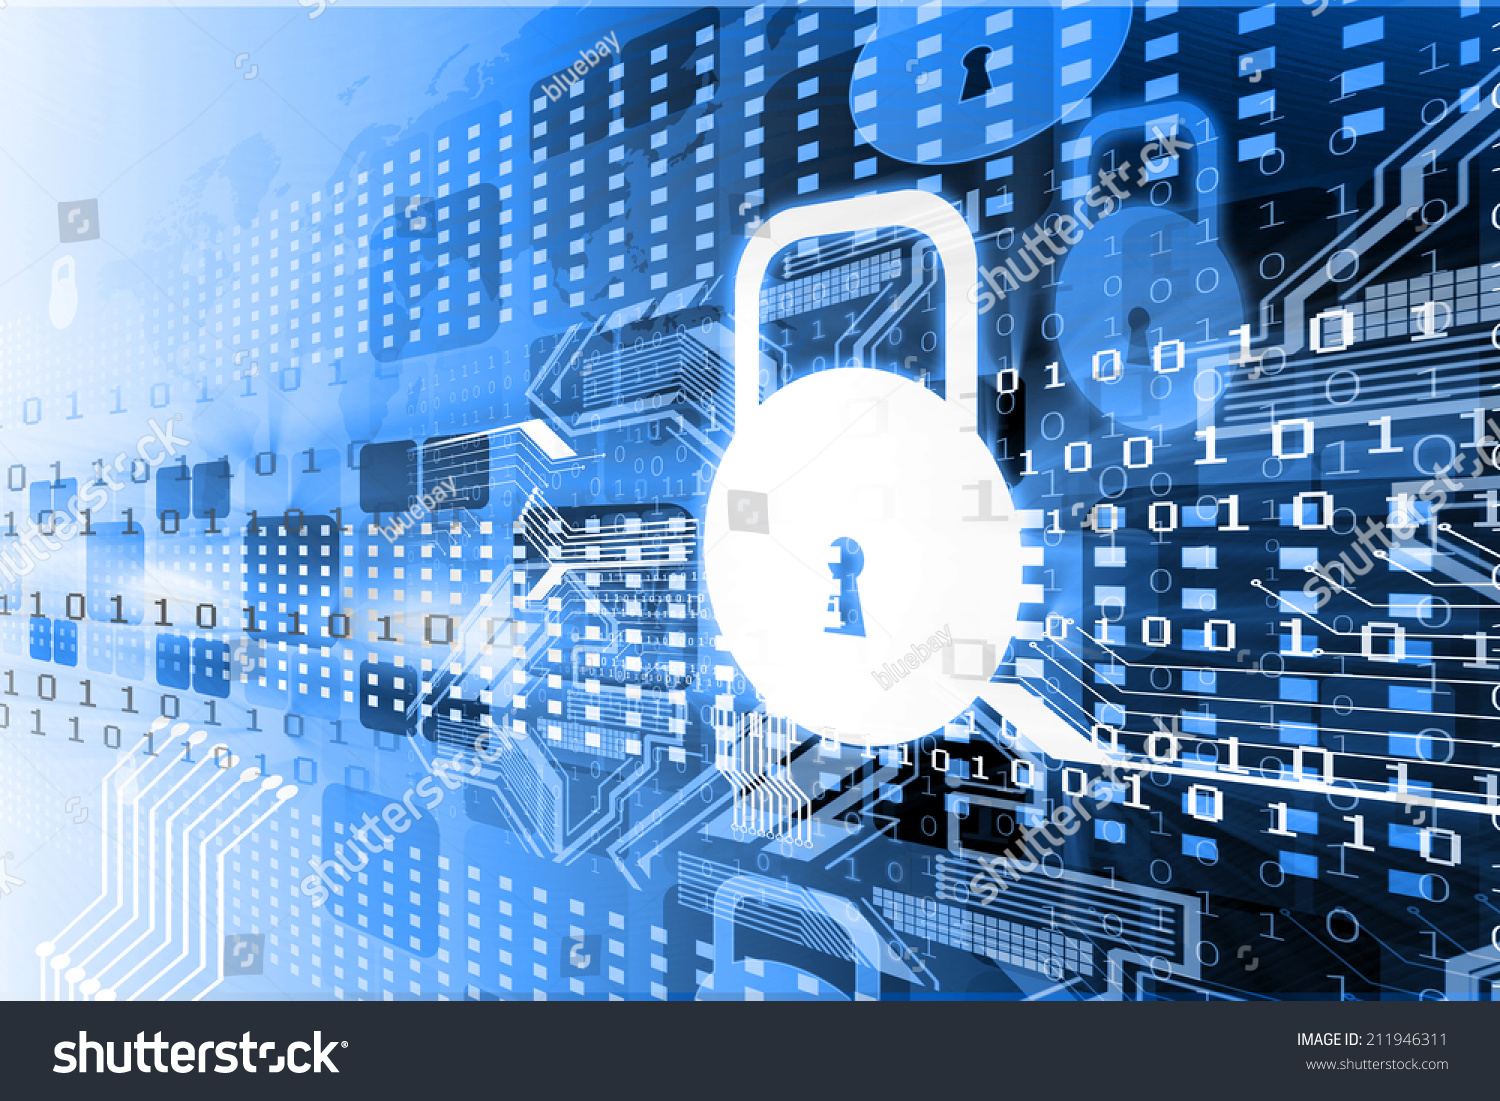 Cyber Security Concept Circuit Board Closed Stock Illustration ...